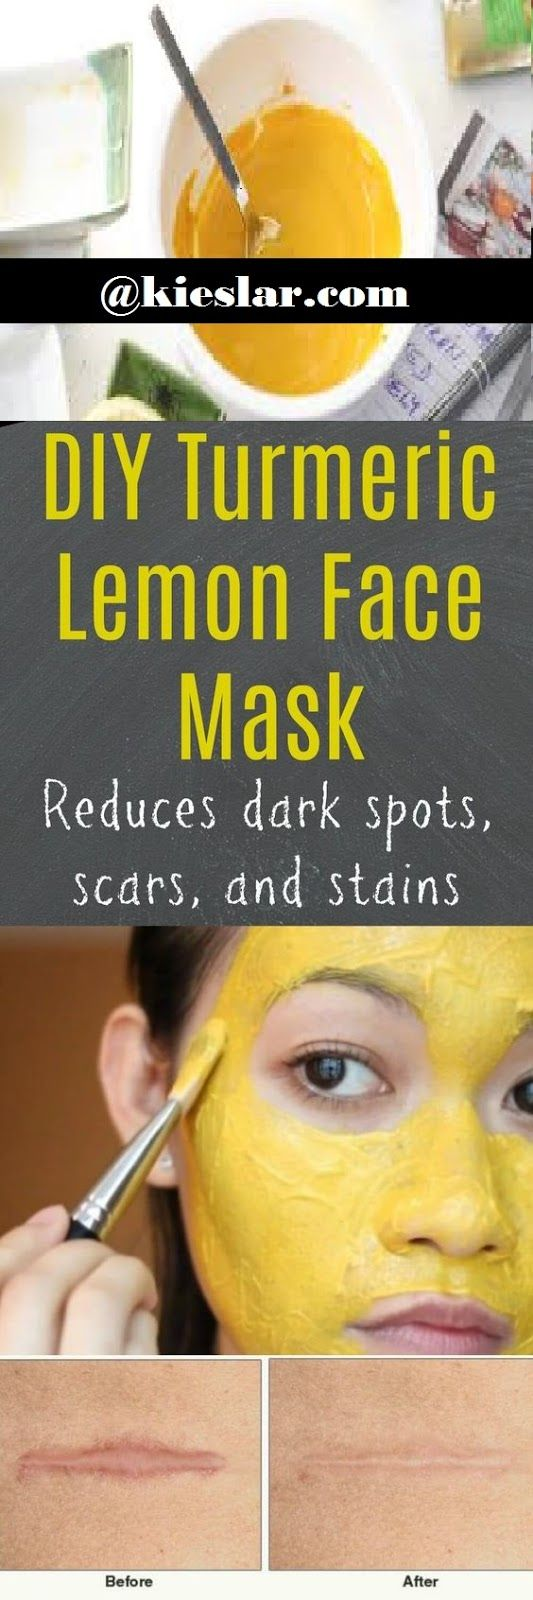 Secret Face Mask For Instant Removal of Dark spots, Scars And Acne